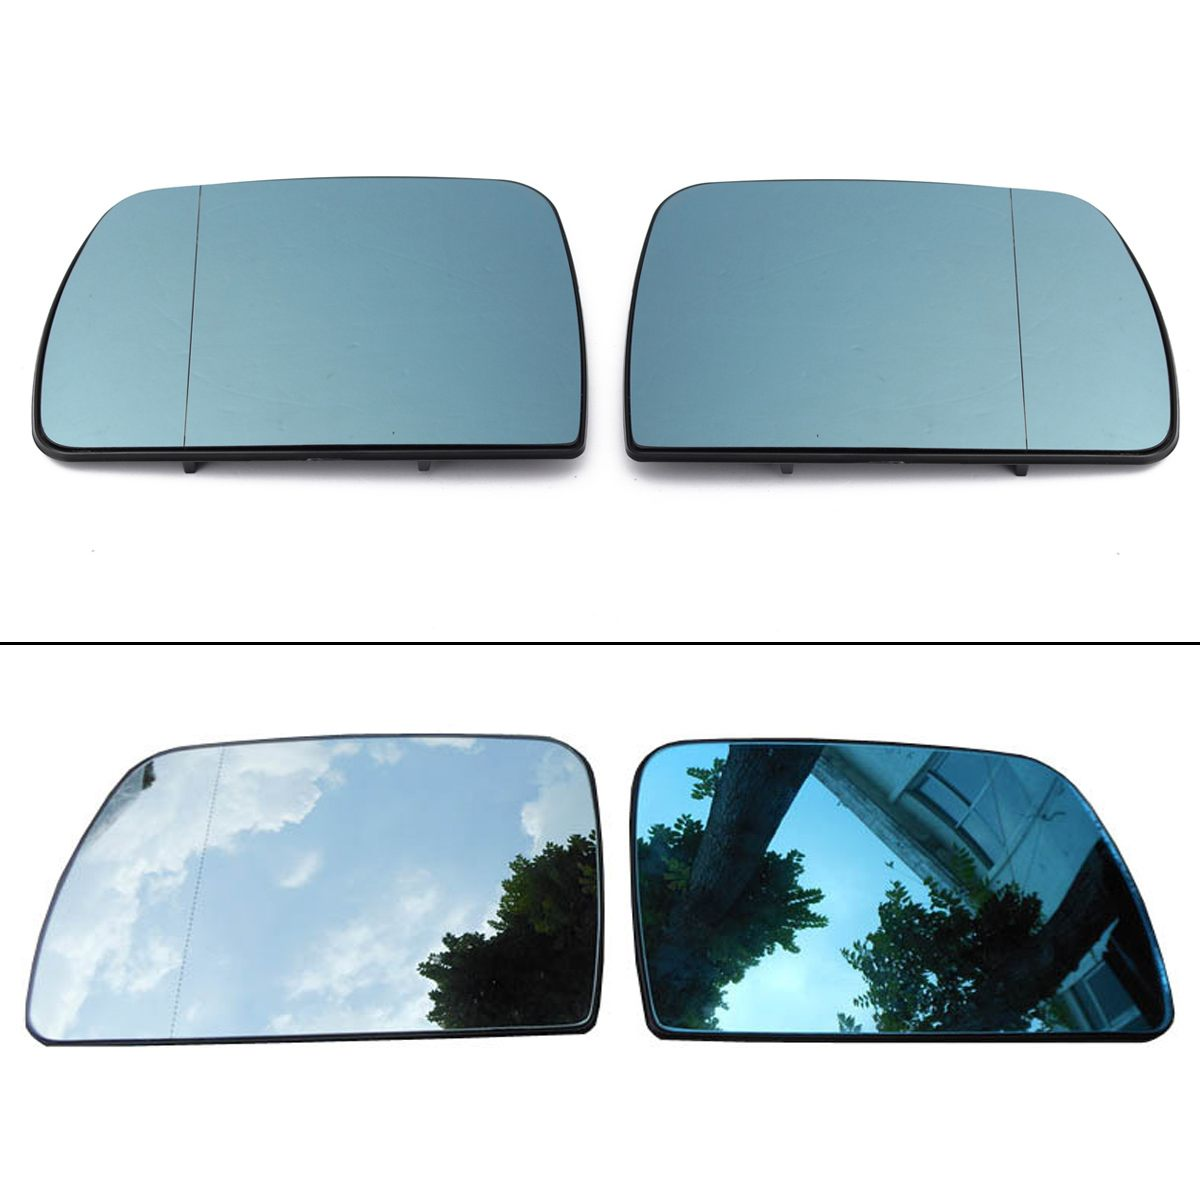 FITS For BMW X5 E53 LEFT SIDE DOOR MIRROR COVER /& TRIM 2000-2006 01 02 03 04